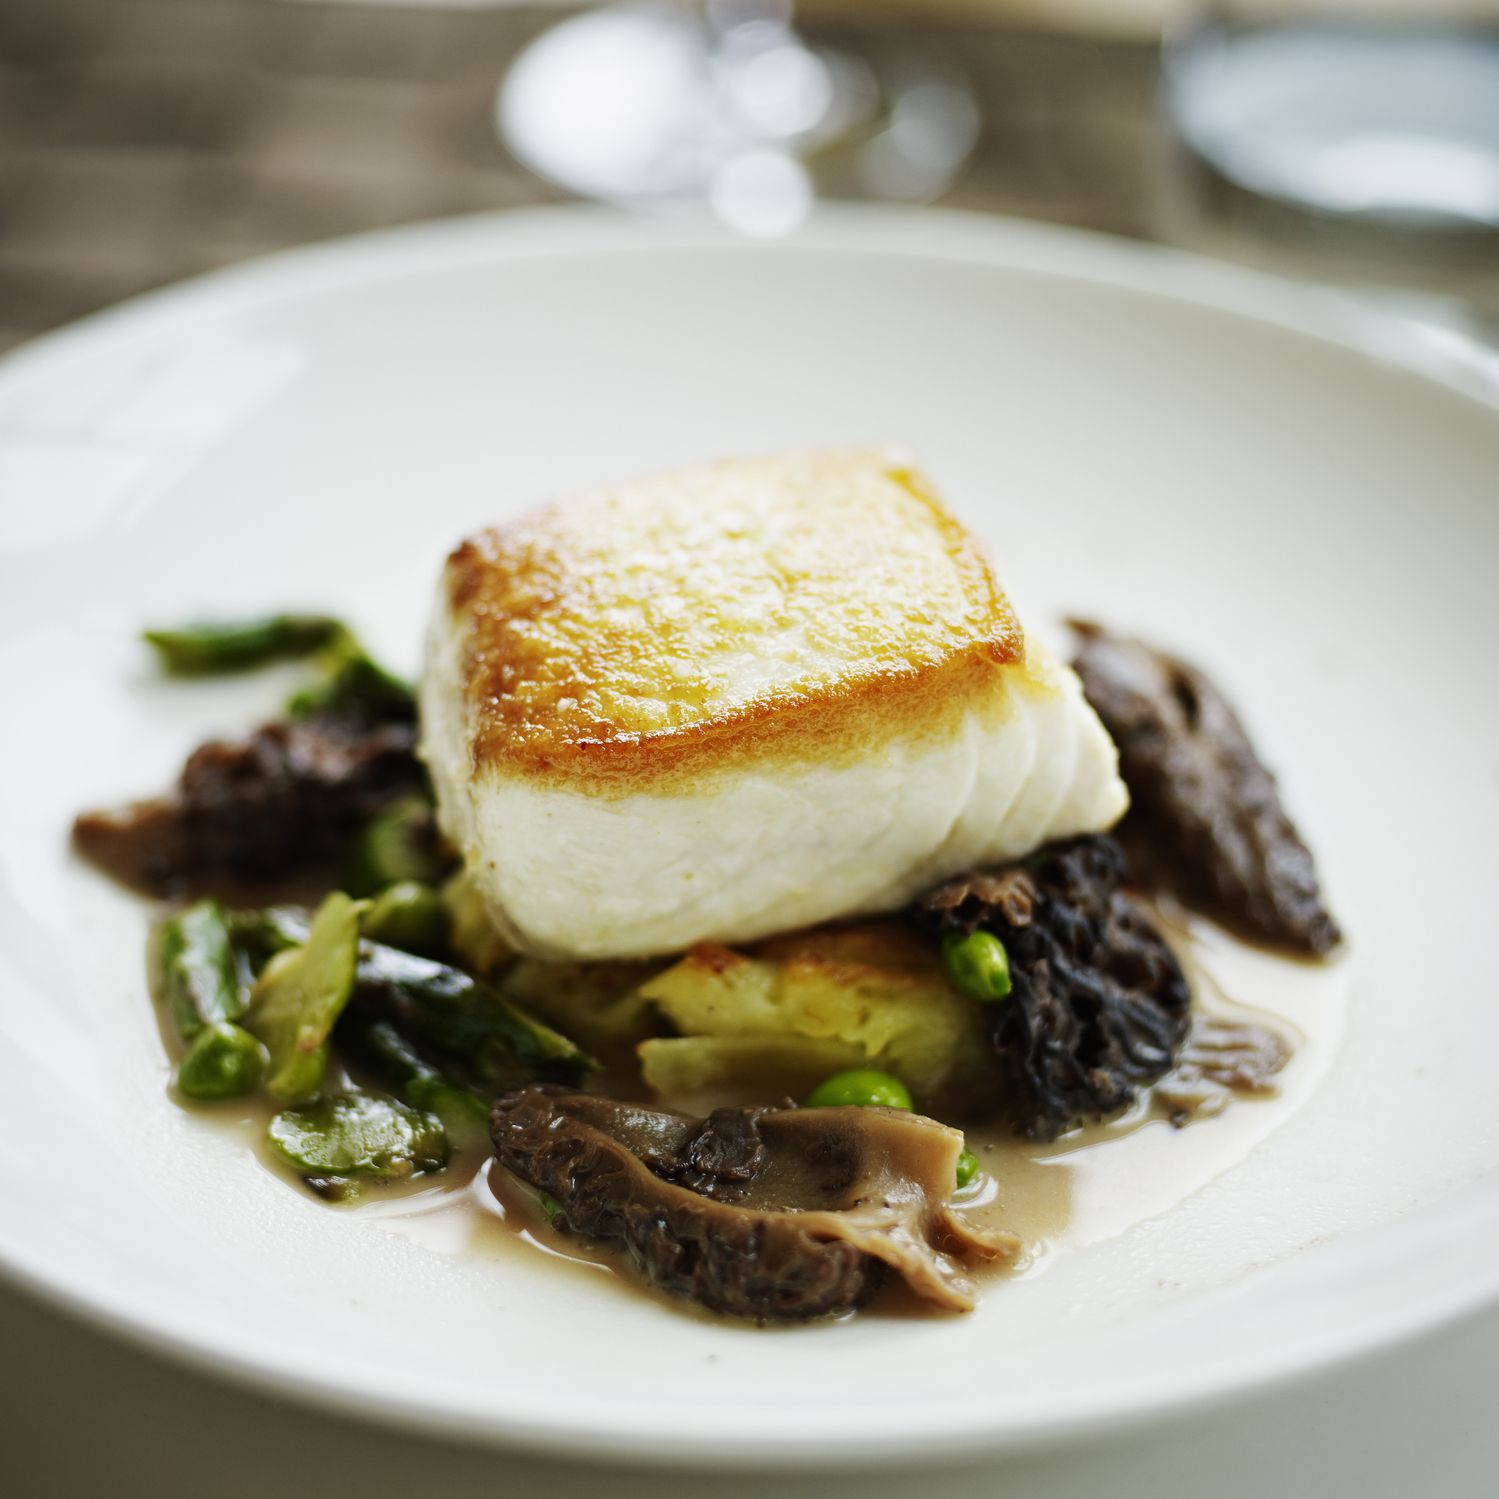 Seared halibut fillet topped on sauteed asparagus and morels